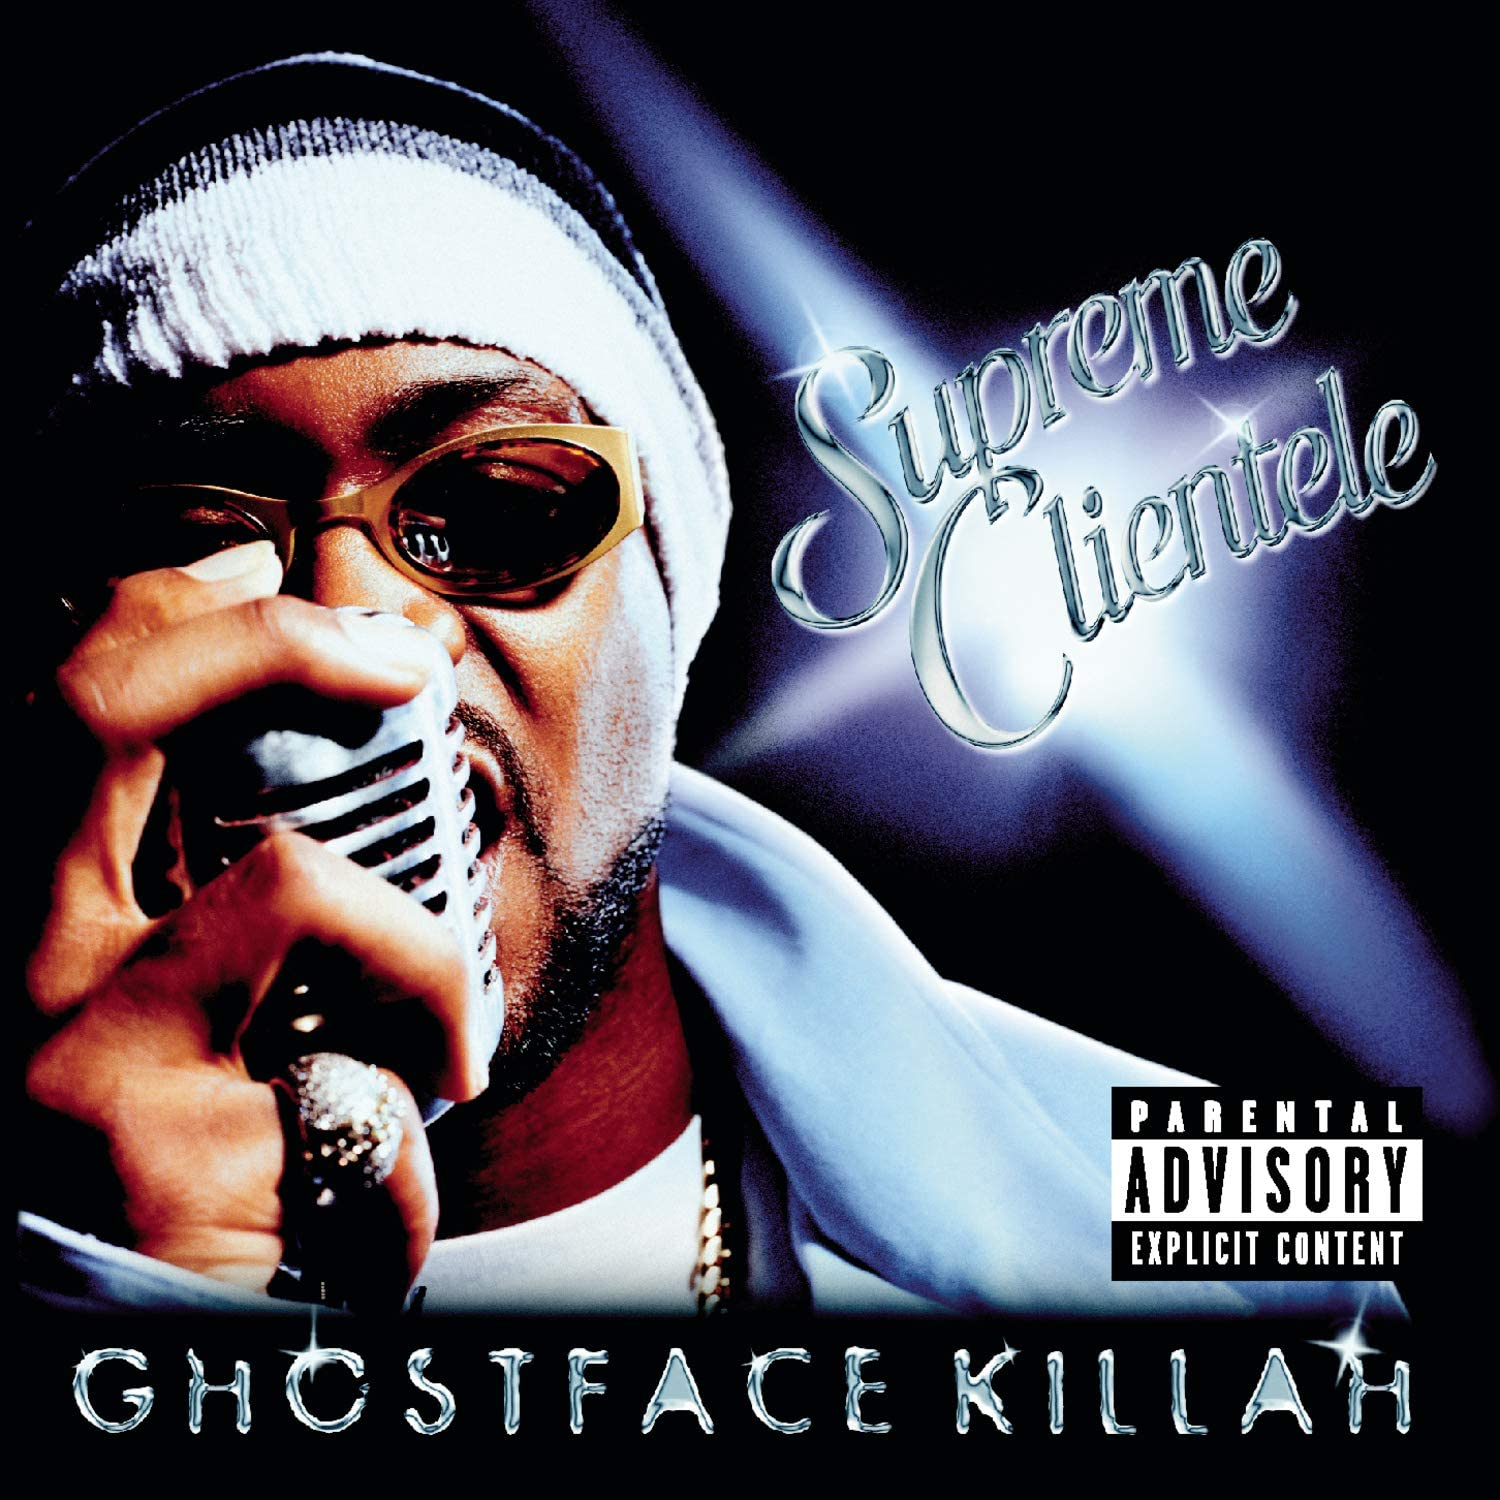 ghostface-killah-clientele-tee